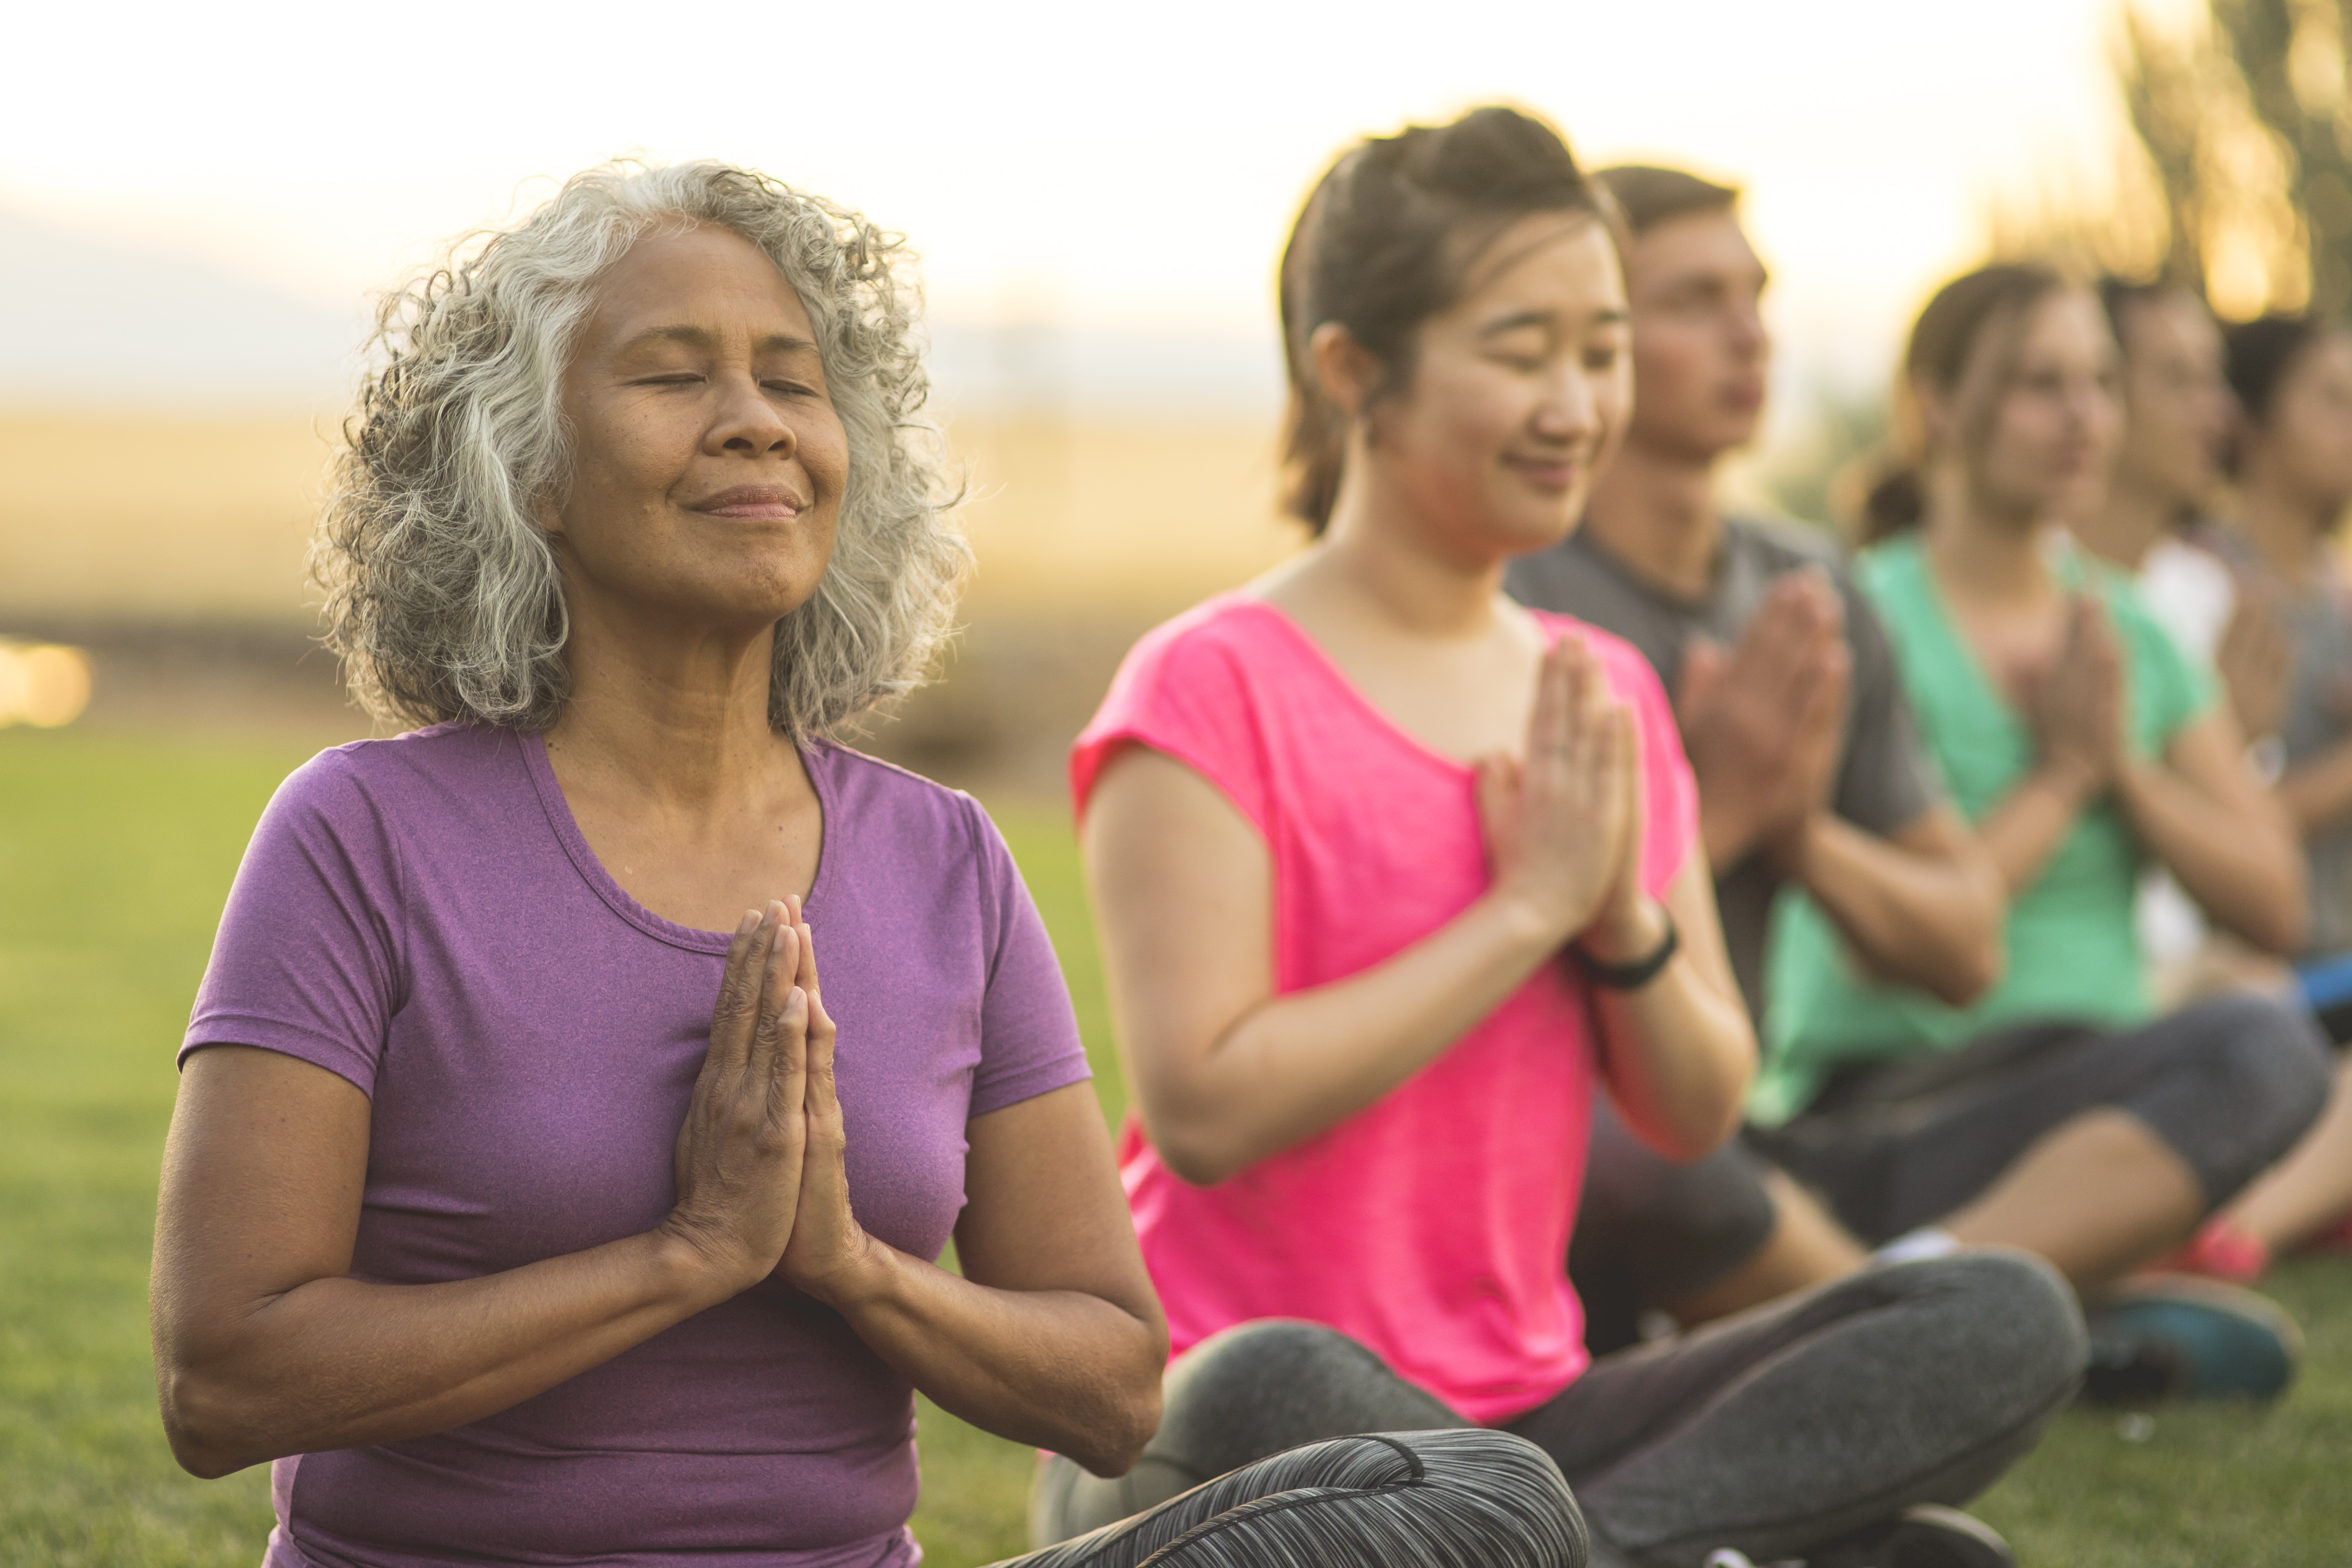 Finding balance in retirement